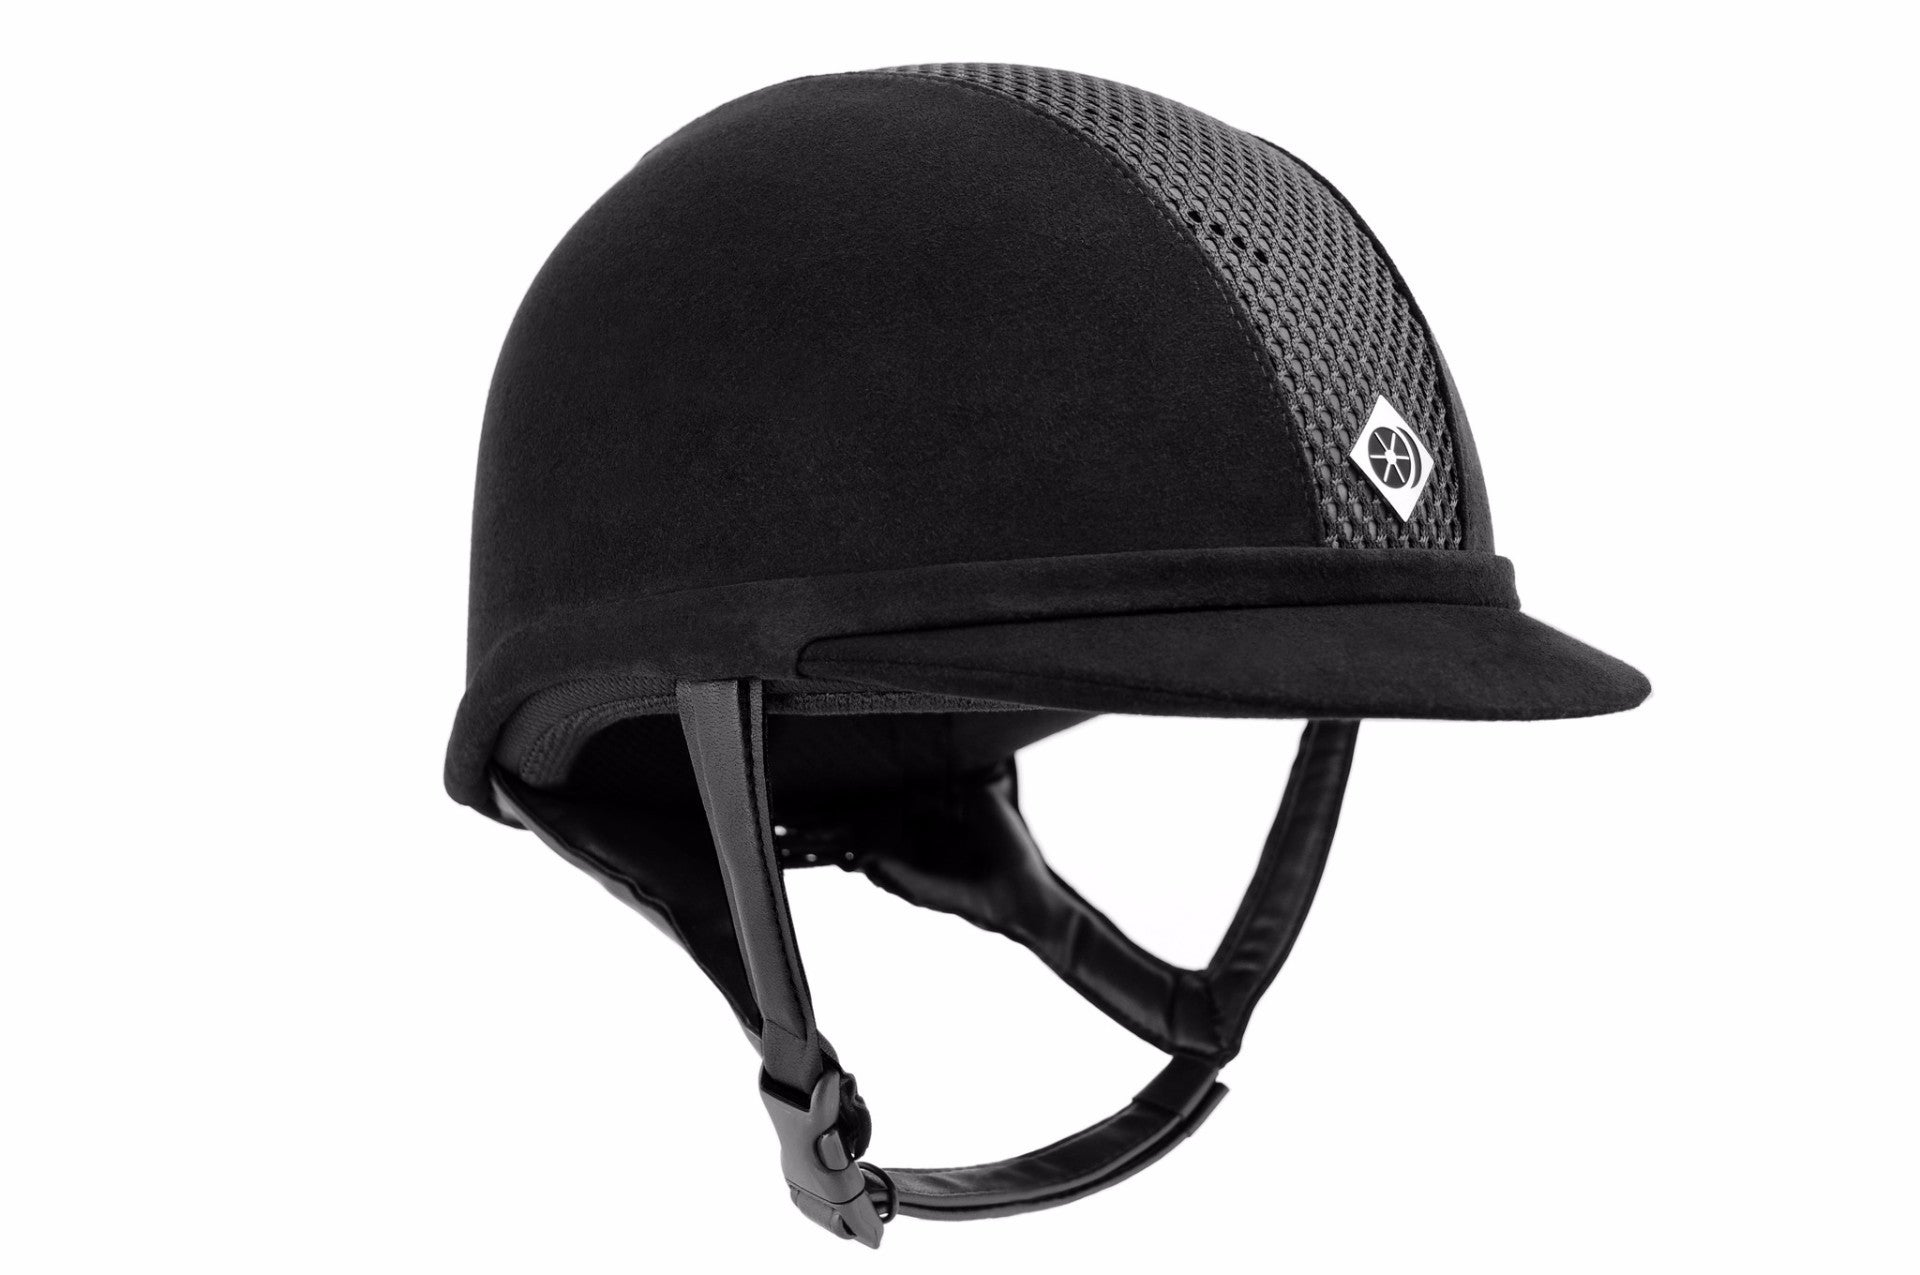 Charles Owen Ayr8 Helmet, black, low profile, centrally located front and rear ventilation apertures covered in mesh, while the side panels are covered in microfiber suede